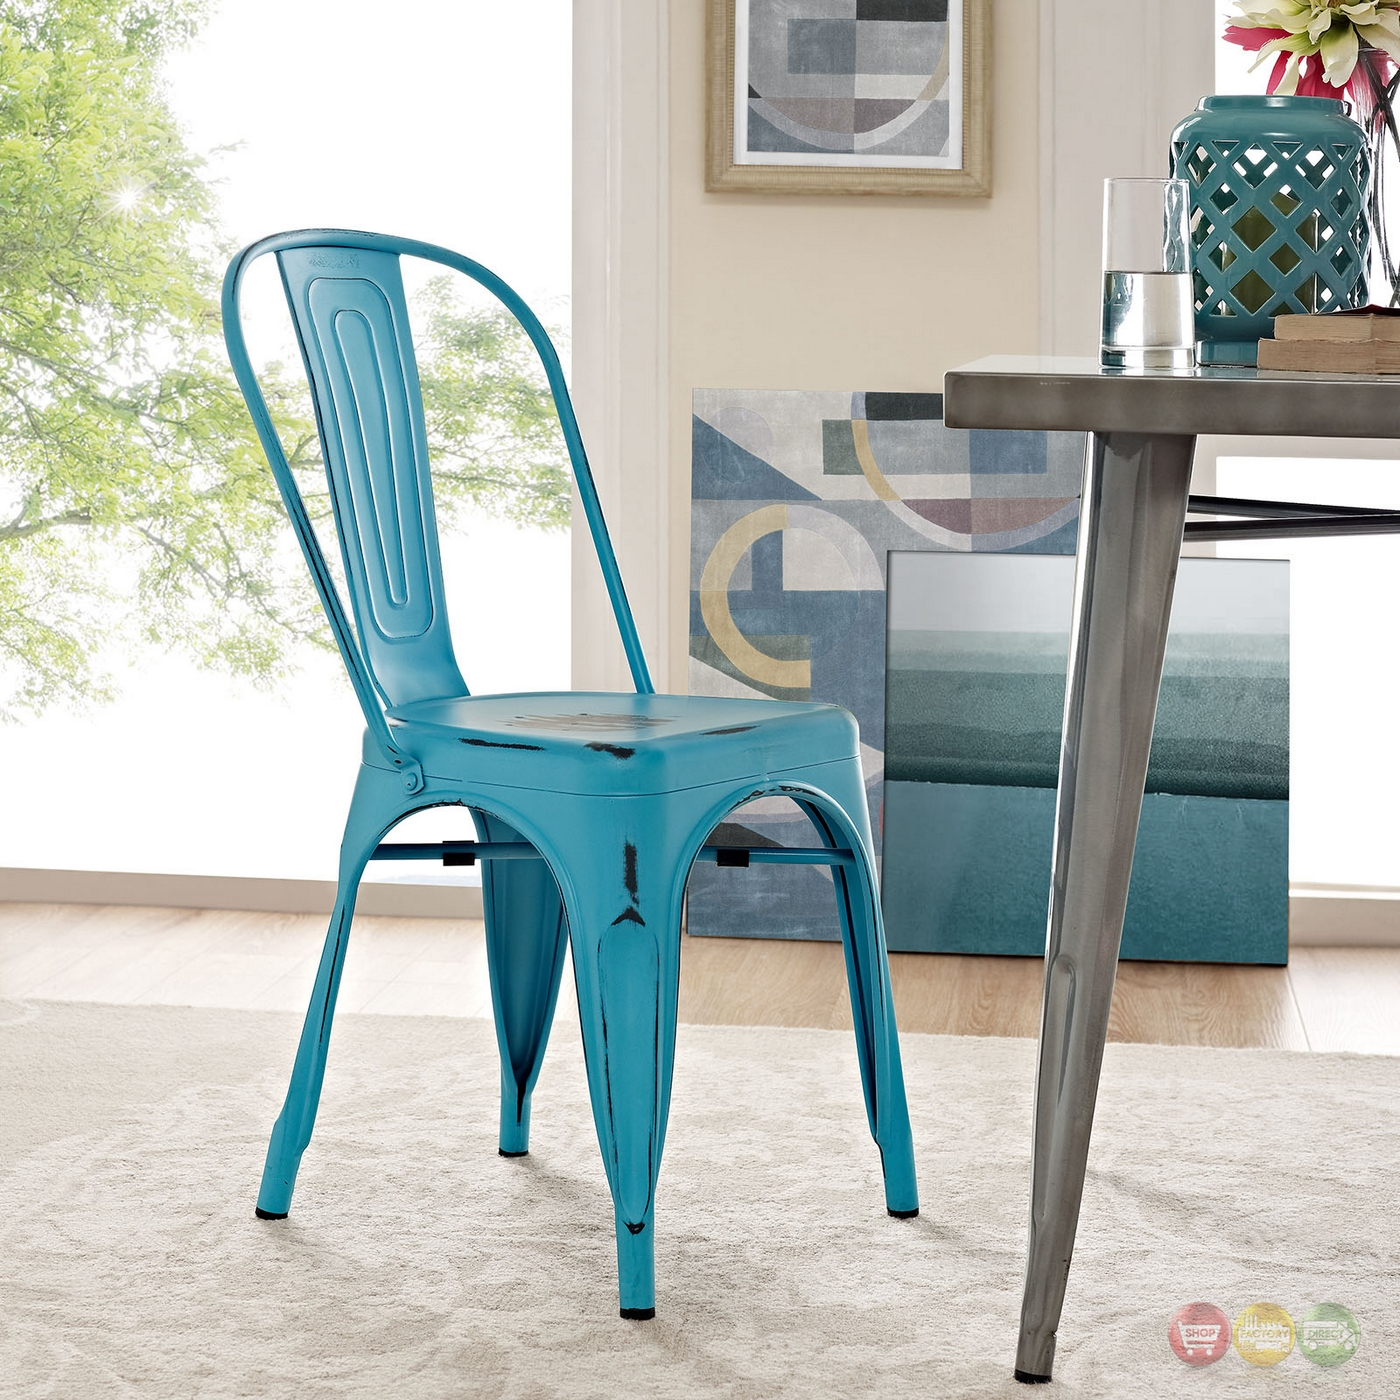 Turquoise Side Chair Promenade Vintage Modern Steel Side Chair With Distressed